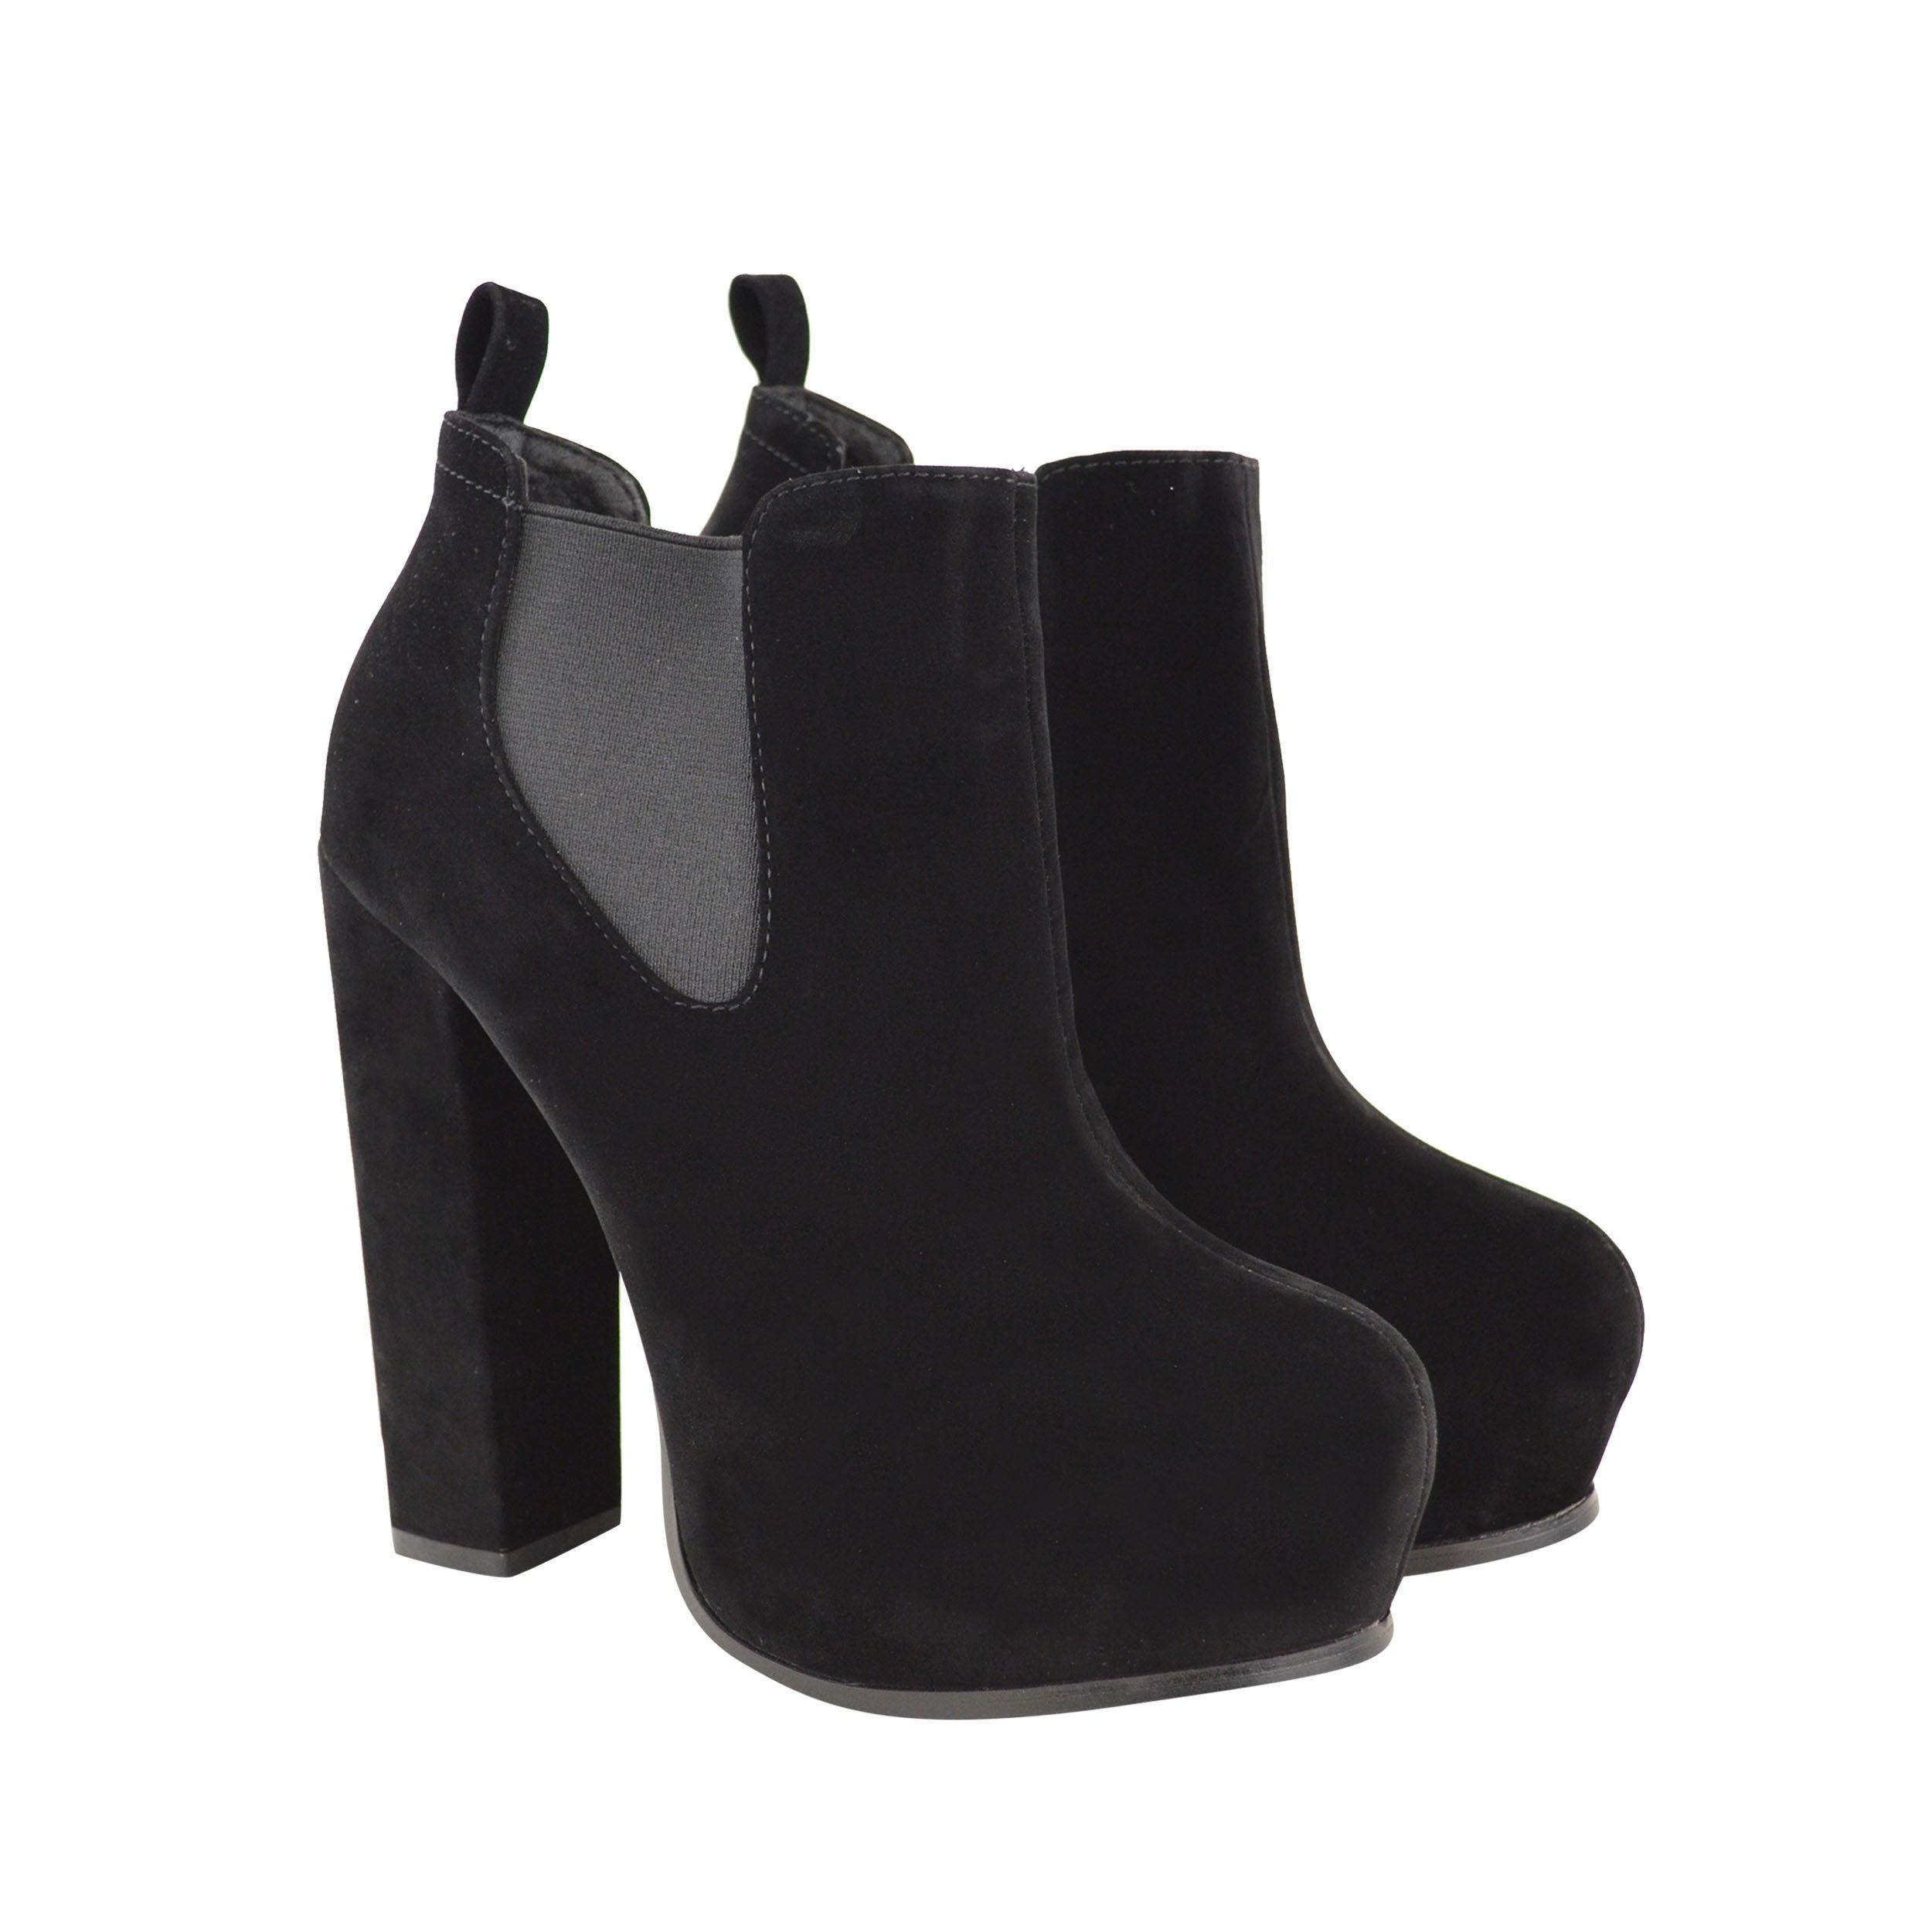 b5a6bdc1cbc Imogen High Heel Boots - Designer Boots For Women | Dominique in ...